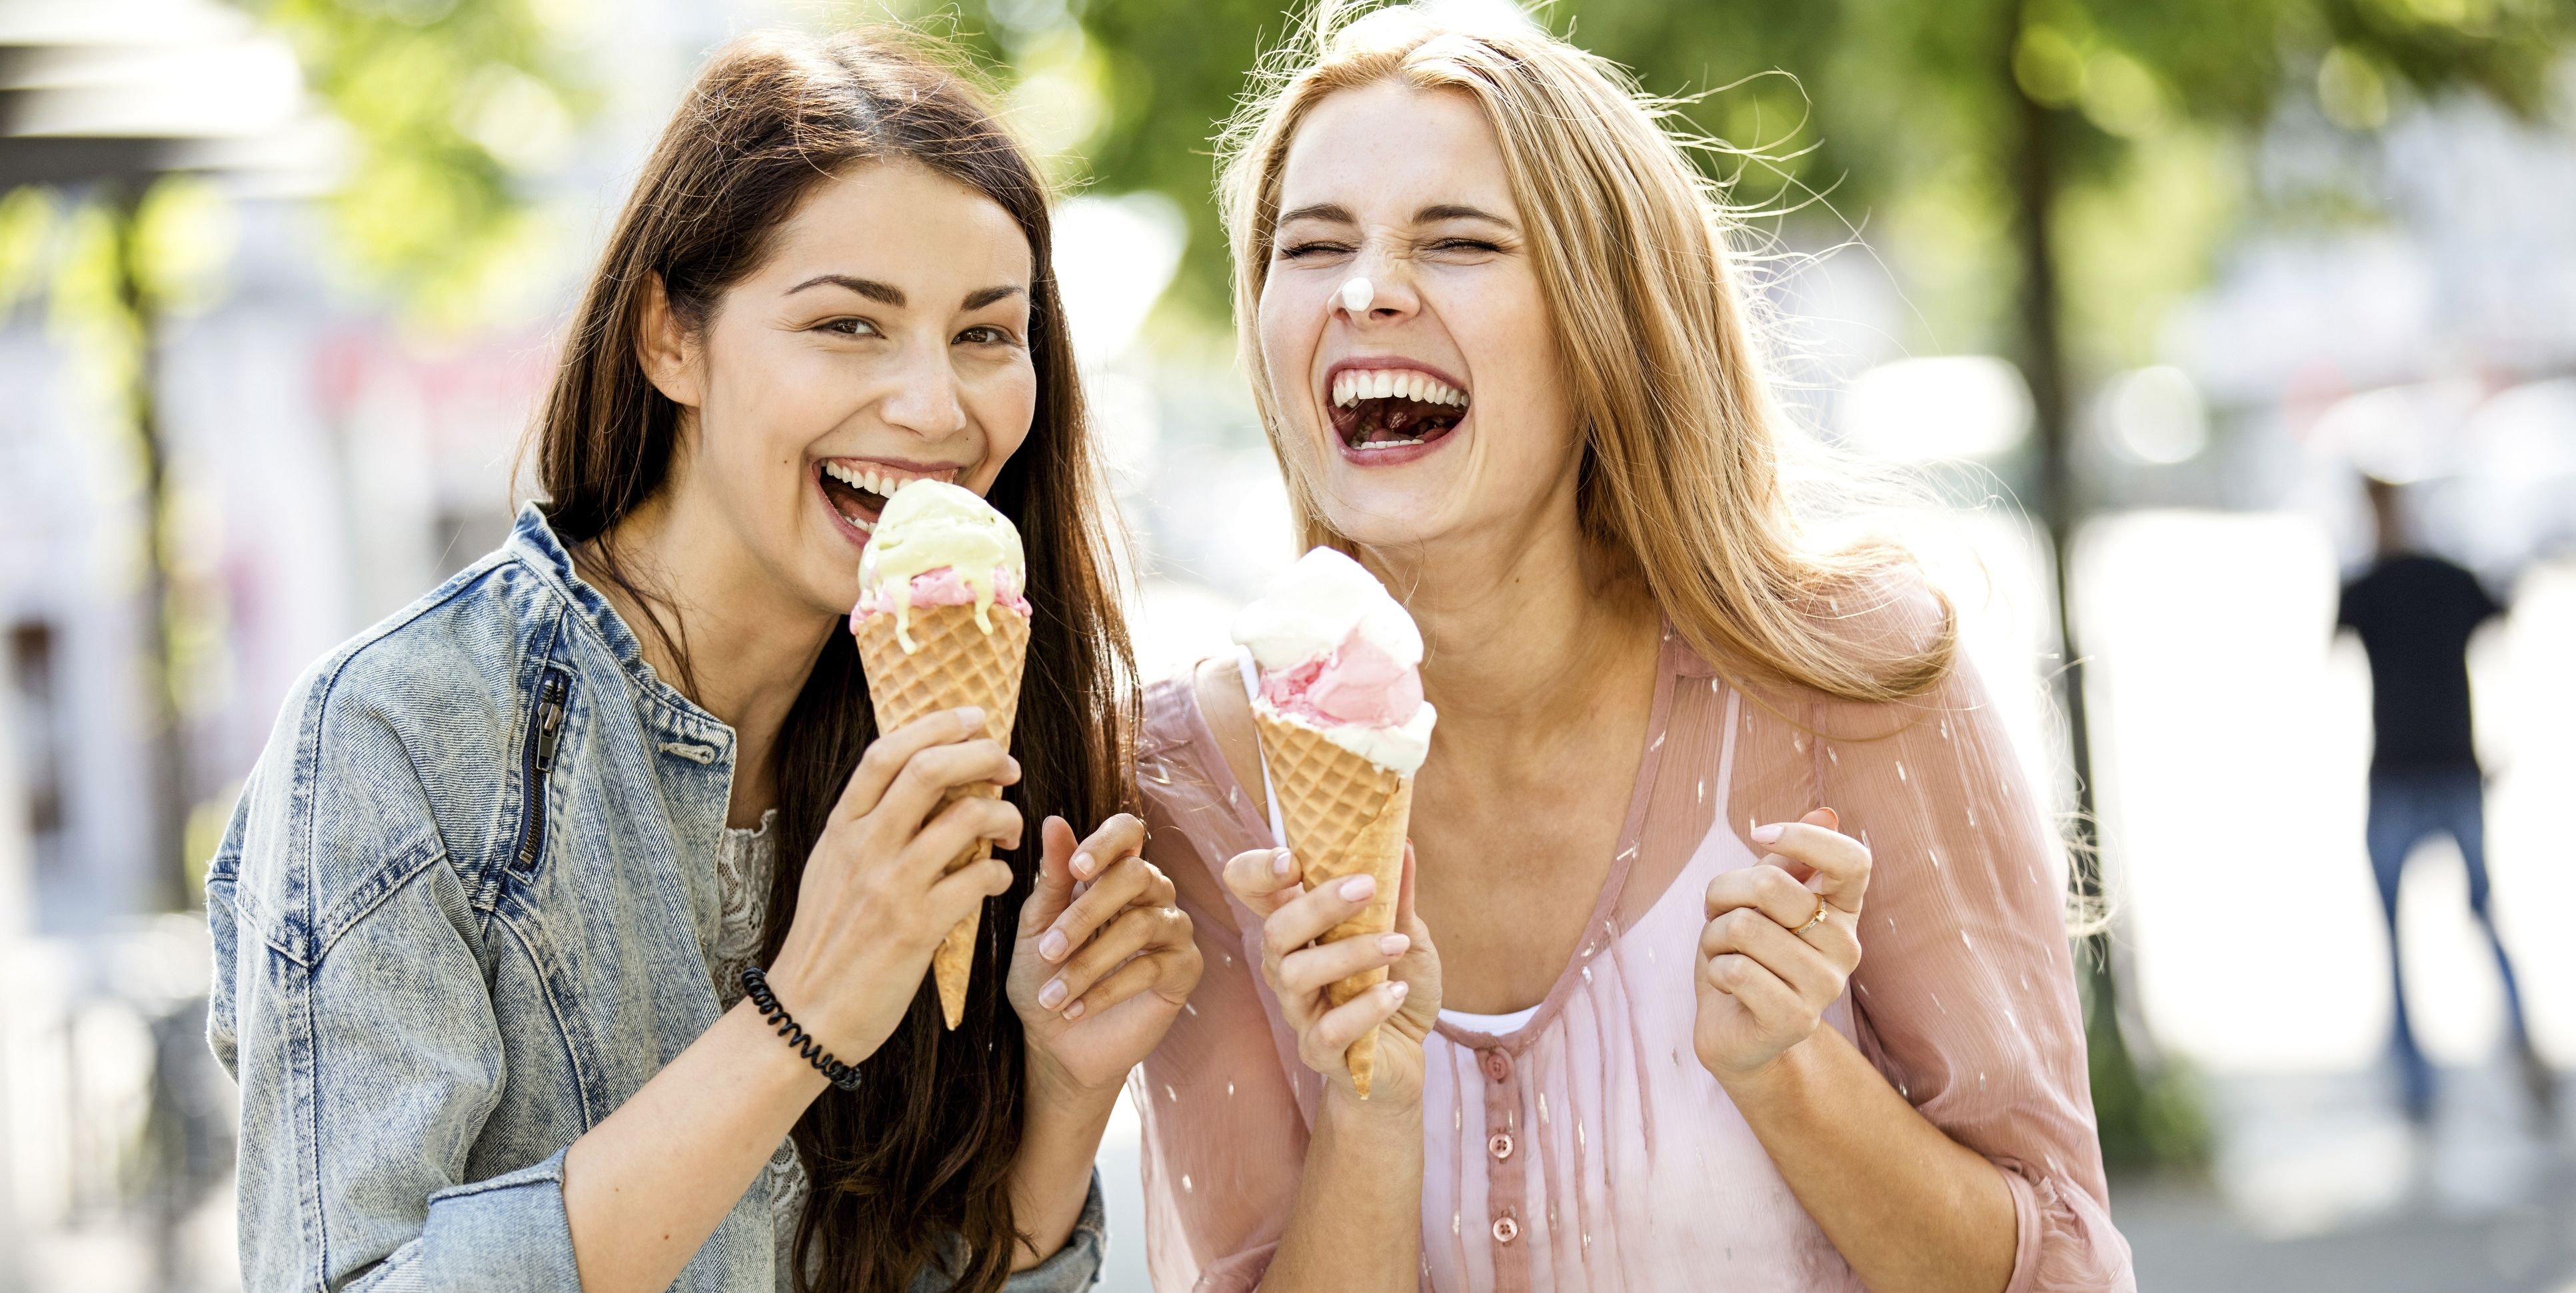 Two laughing young women with ice cream cones